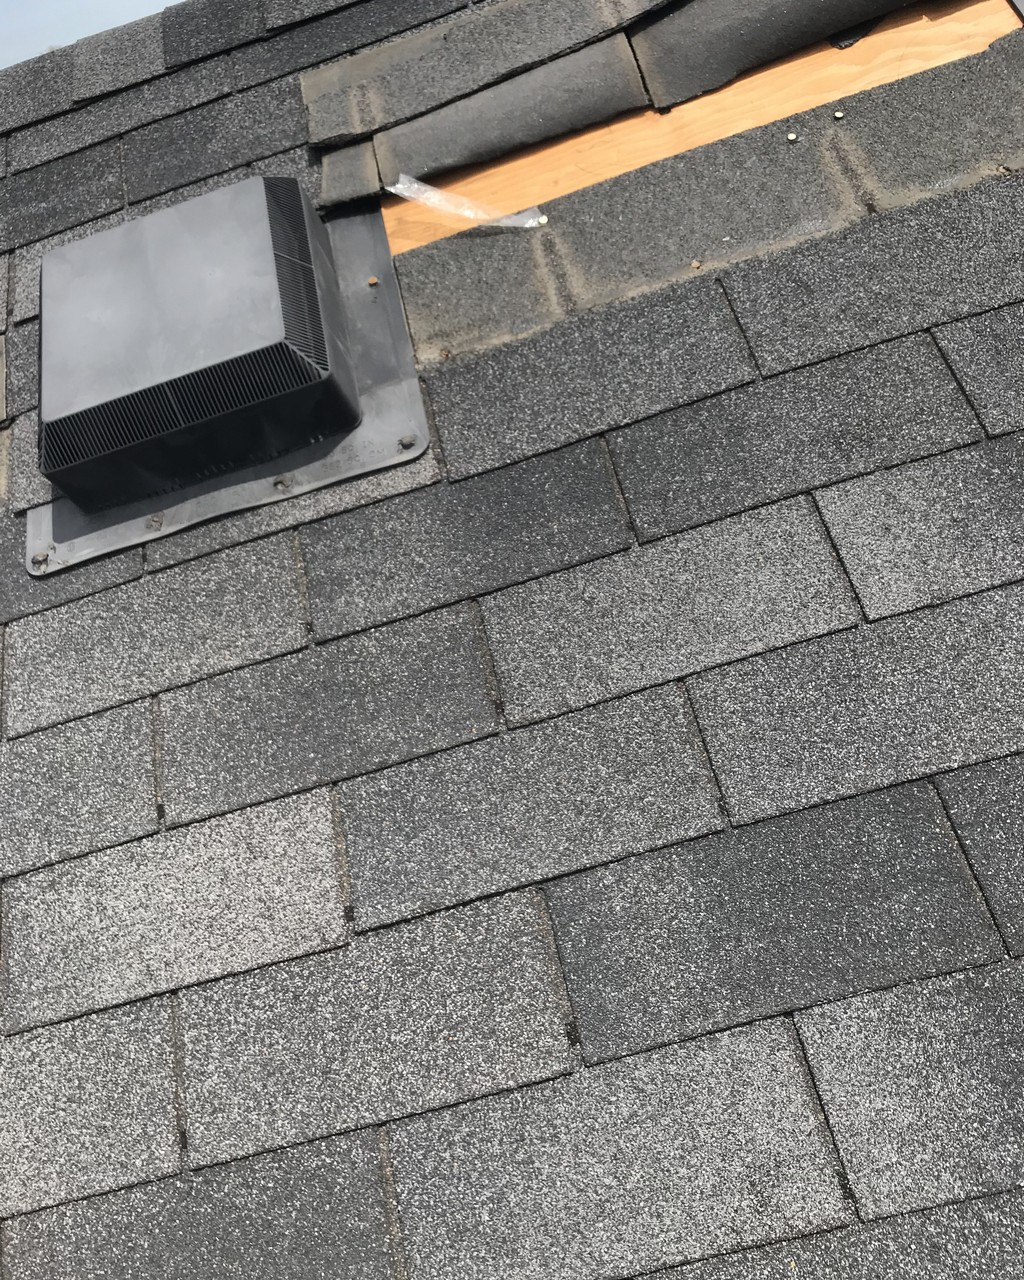 Windstorm damage to shingle roof in Ajax